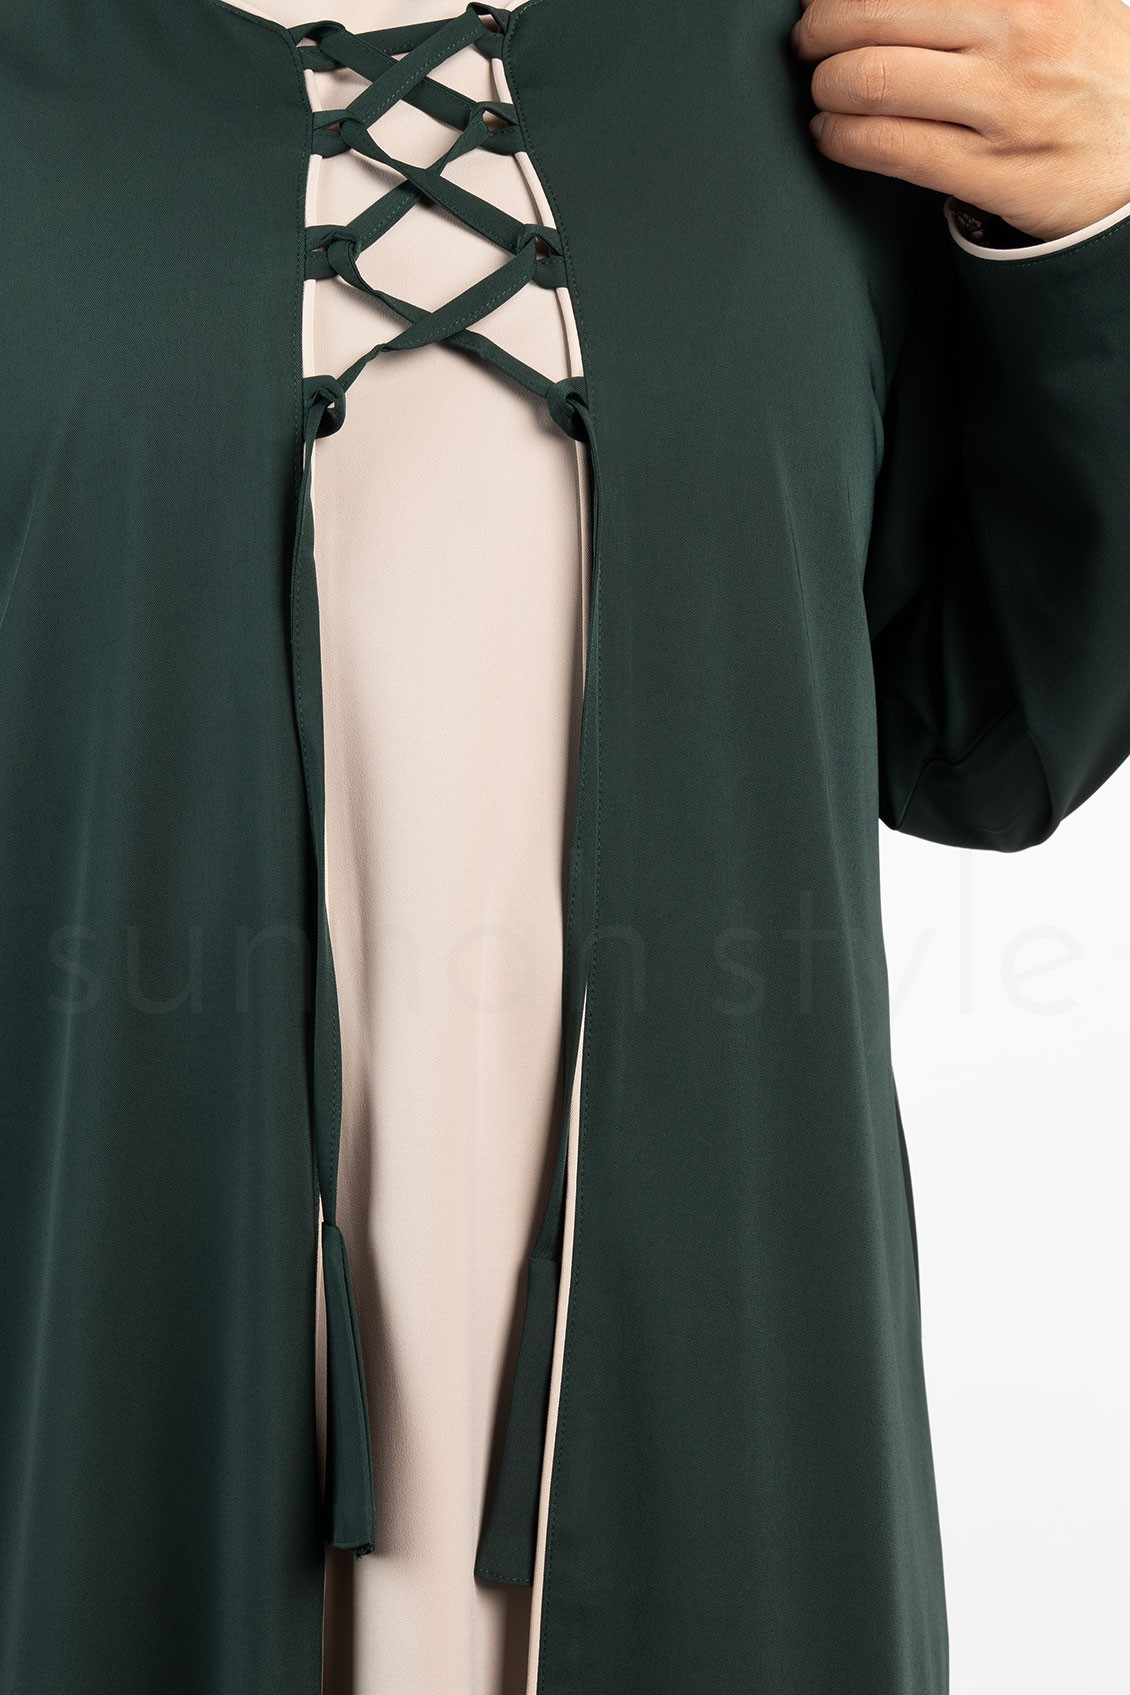 Sunnah Style Bloom Two Tone Abaya Pine Green Sahara